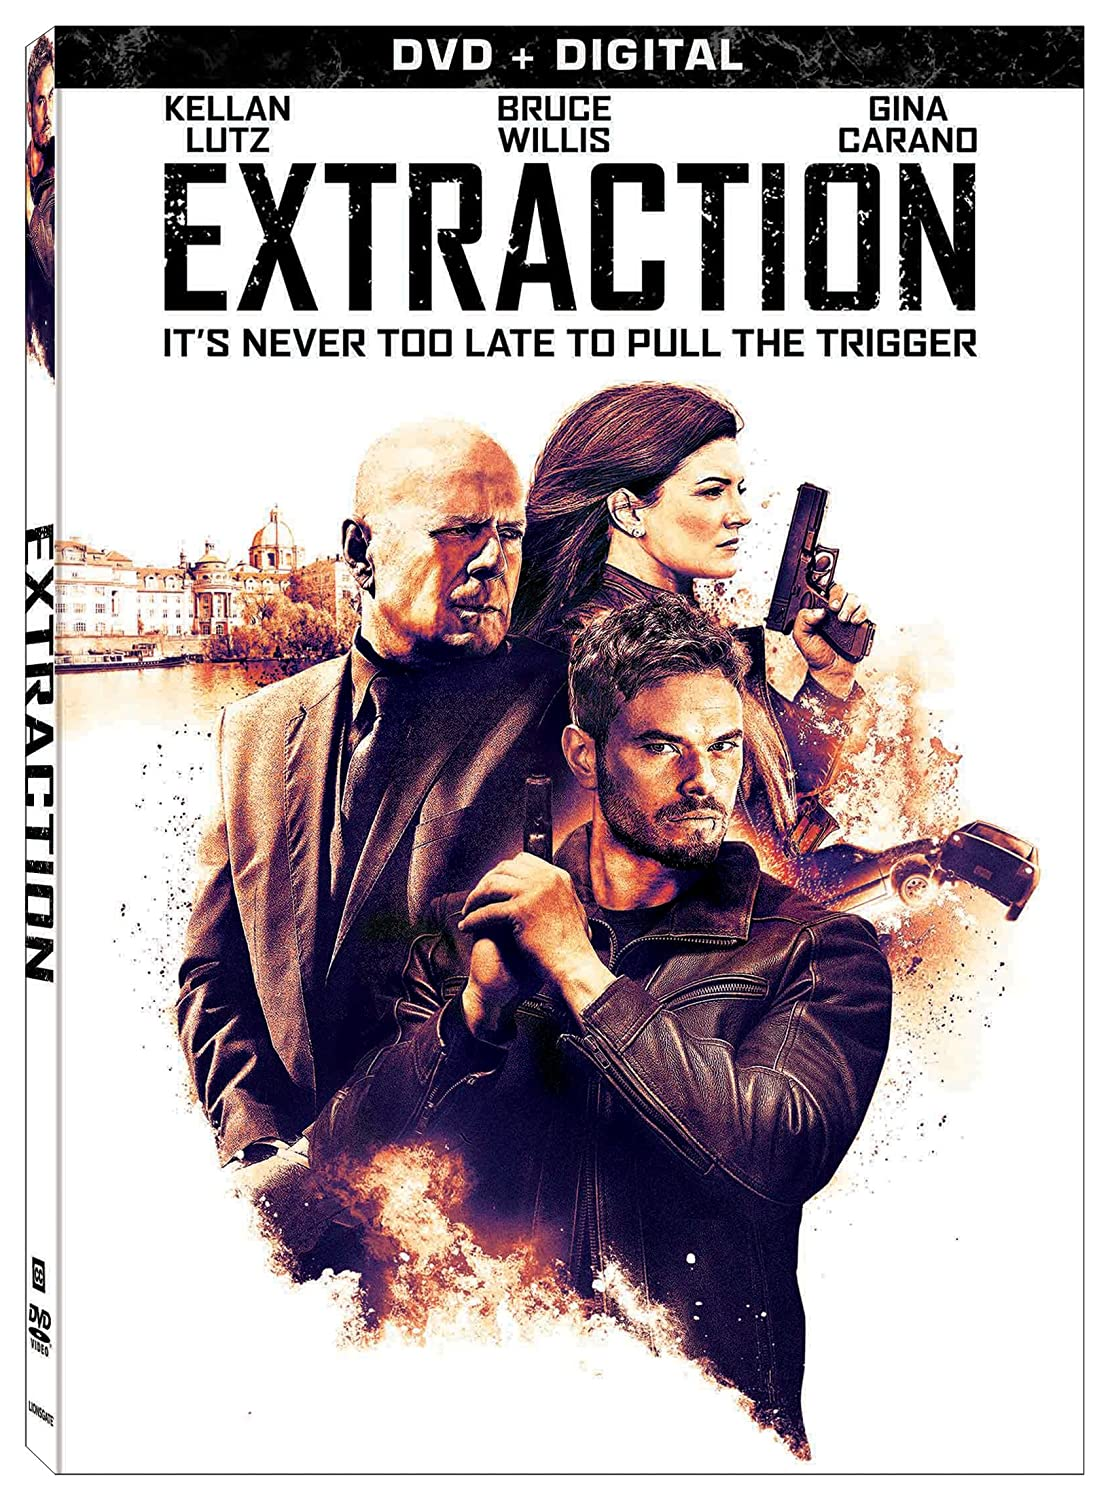 Amazon Com Extraction Dvd Digital Bruce Willis Kellan Lutz Gina Carano D B Sweeney Dan Bilzerian Nikki Breanne Wells Summer Altice Steven C Miller Movies Tv